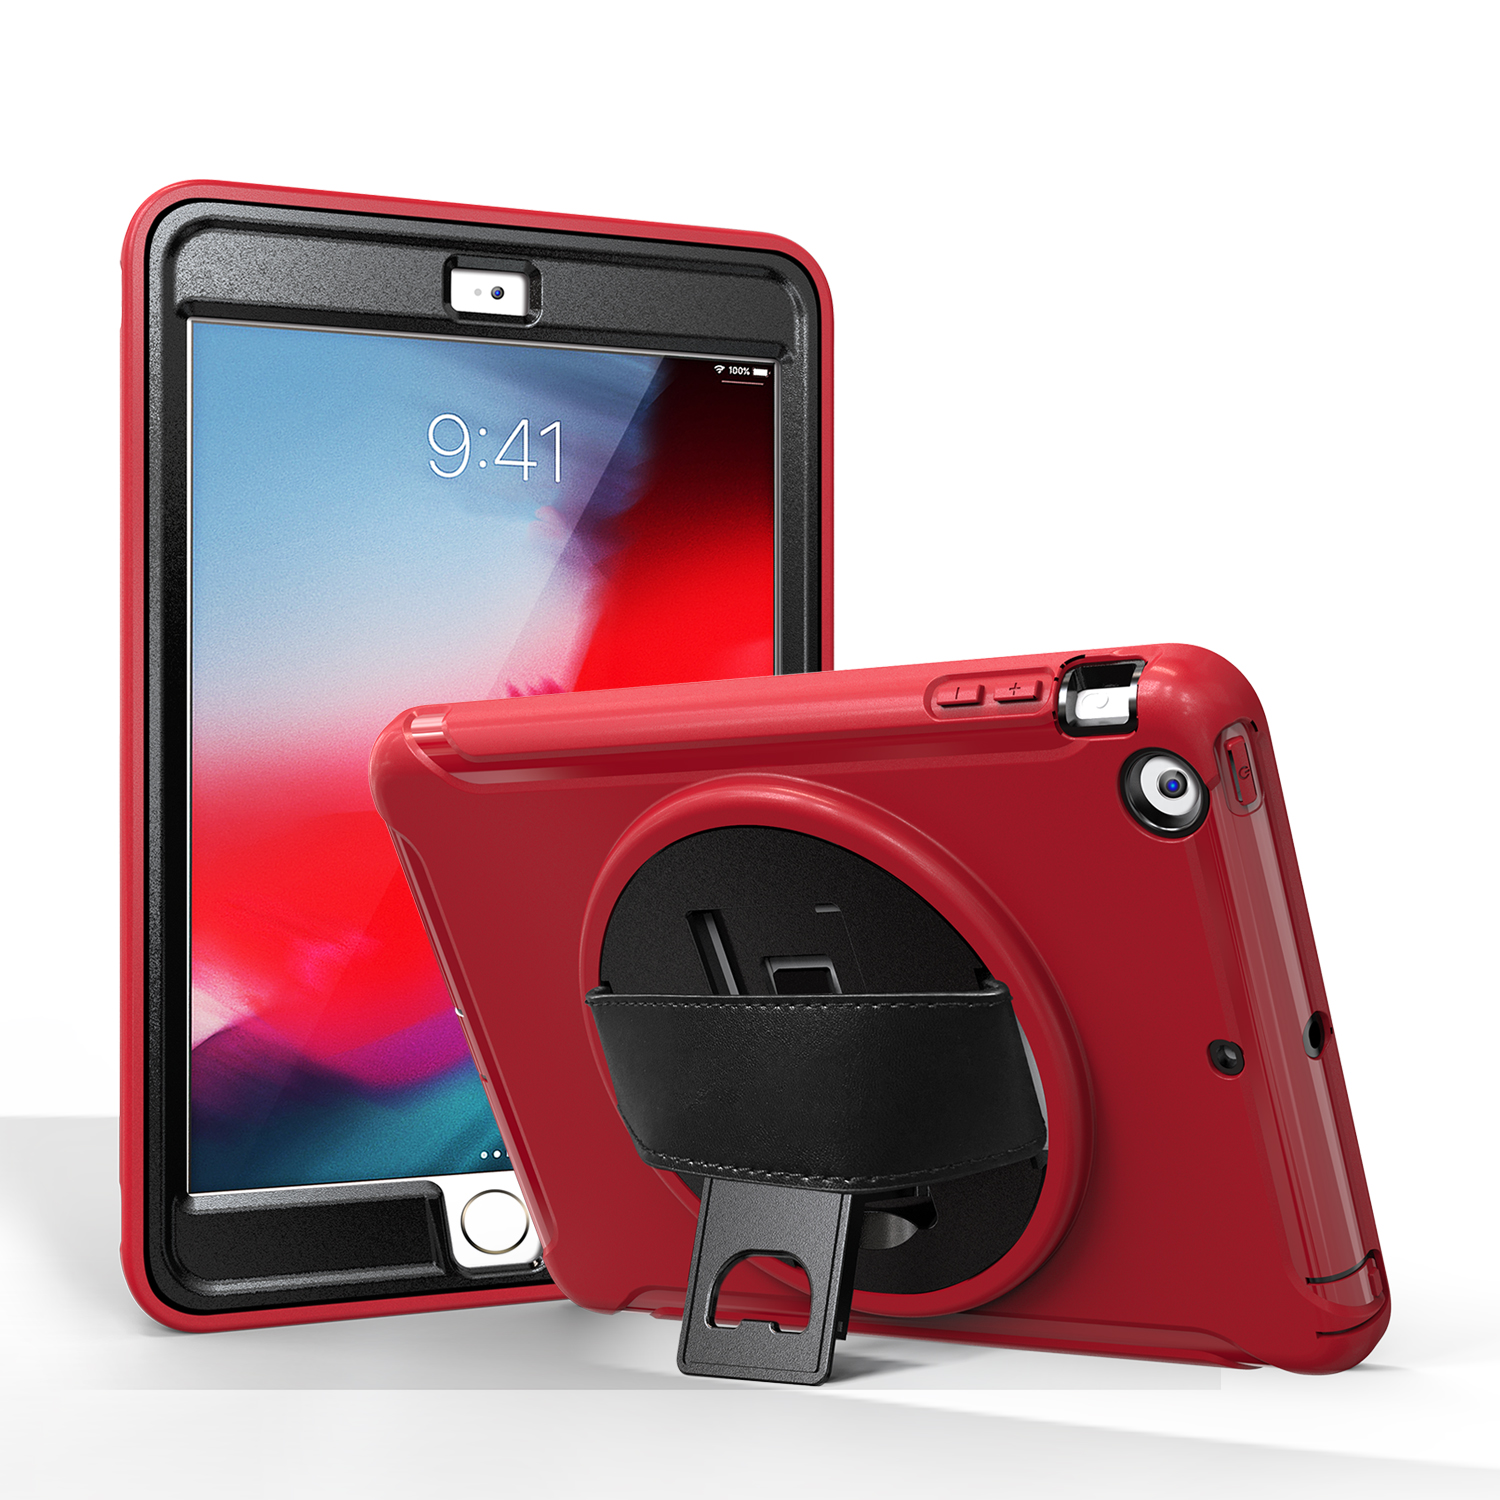 For ipad MINI 1 / 2 / 3 Wrist Handle Tri-proof Shockproof Dustproof Anti-fall Protective Cover with Bracket red